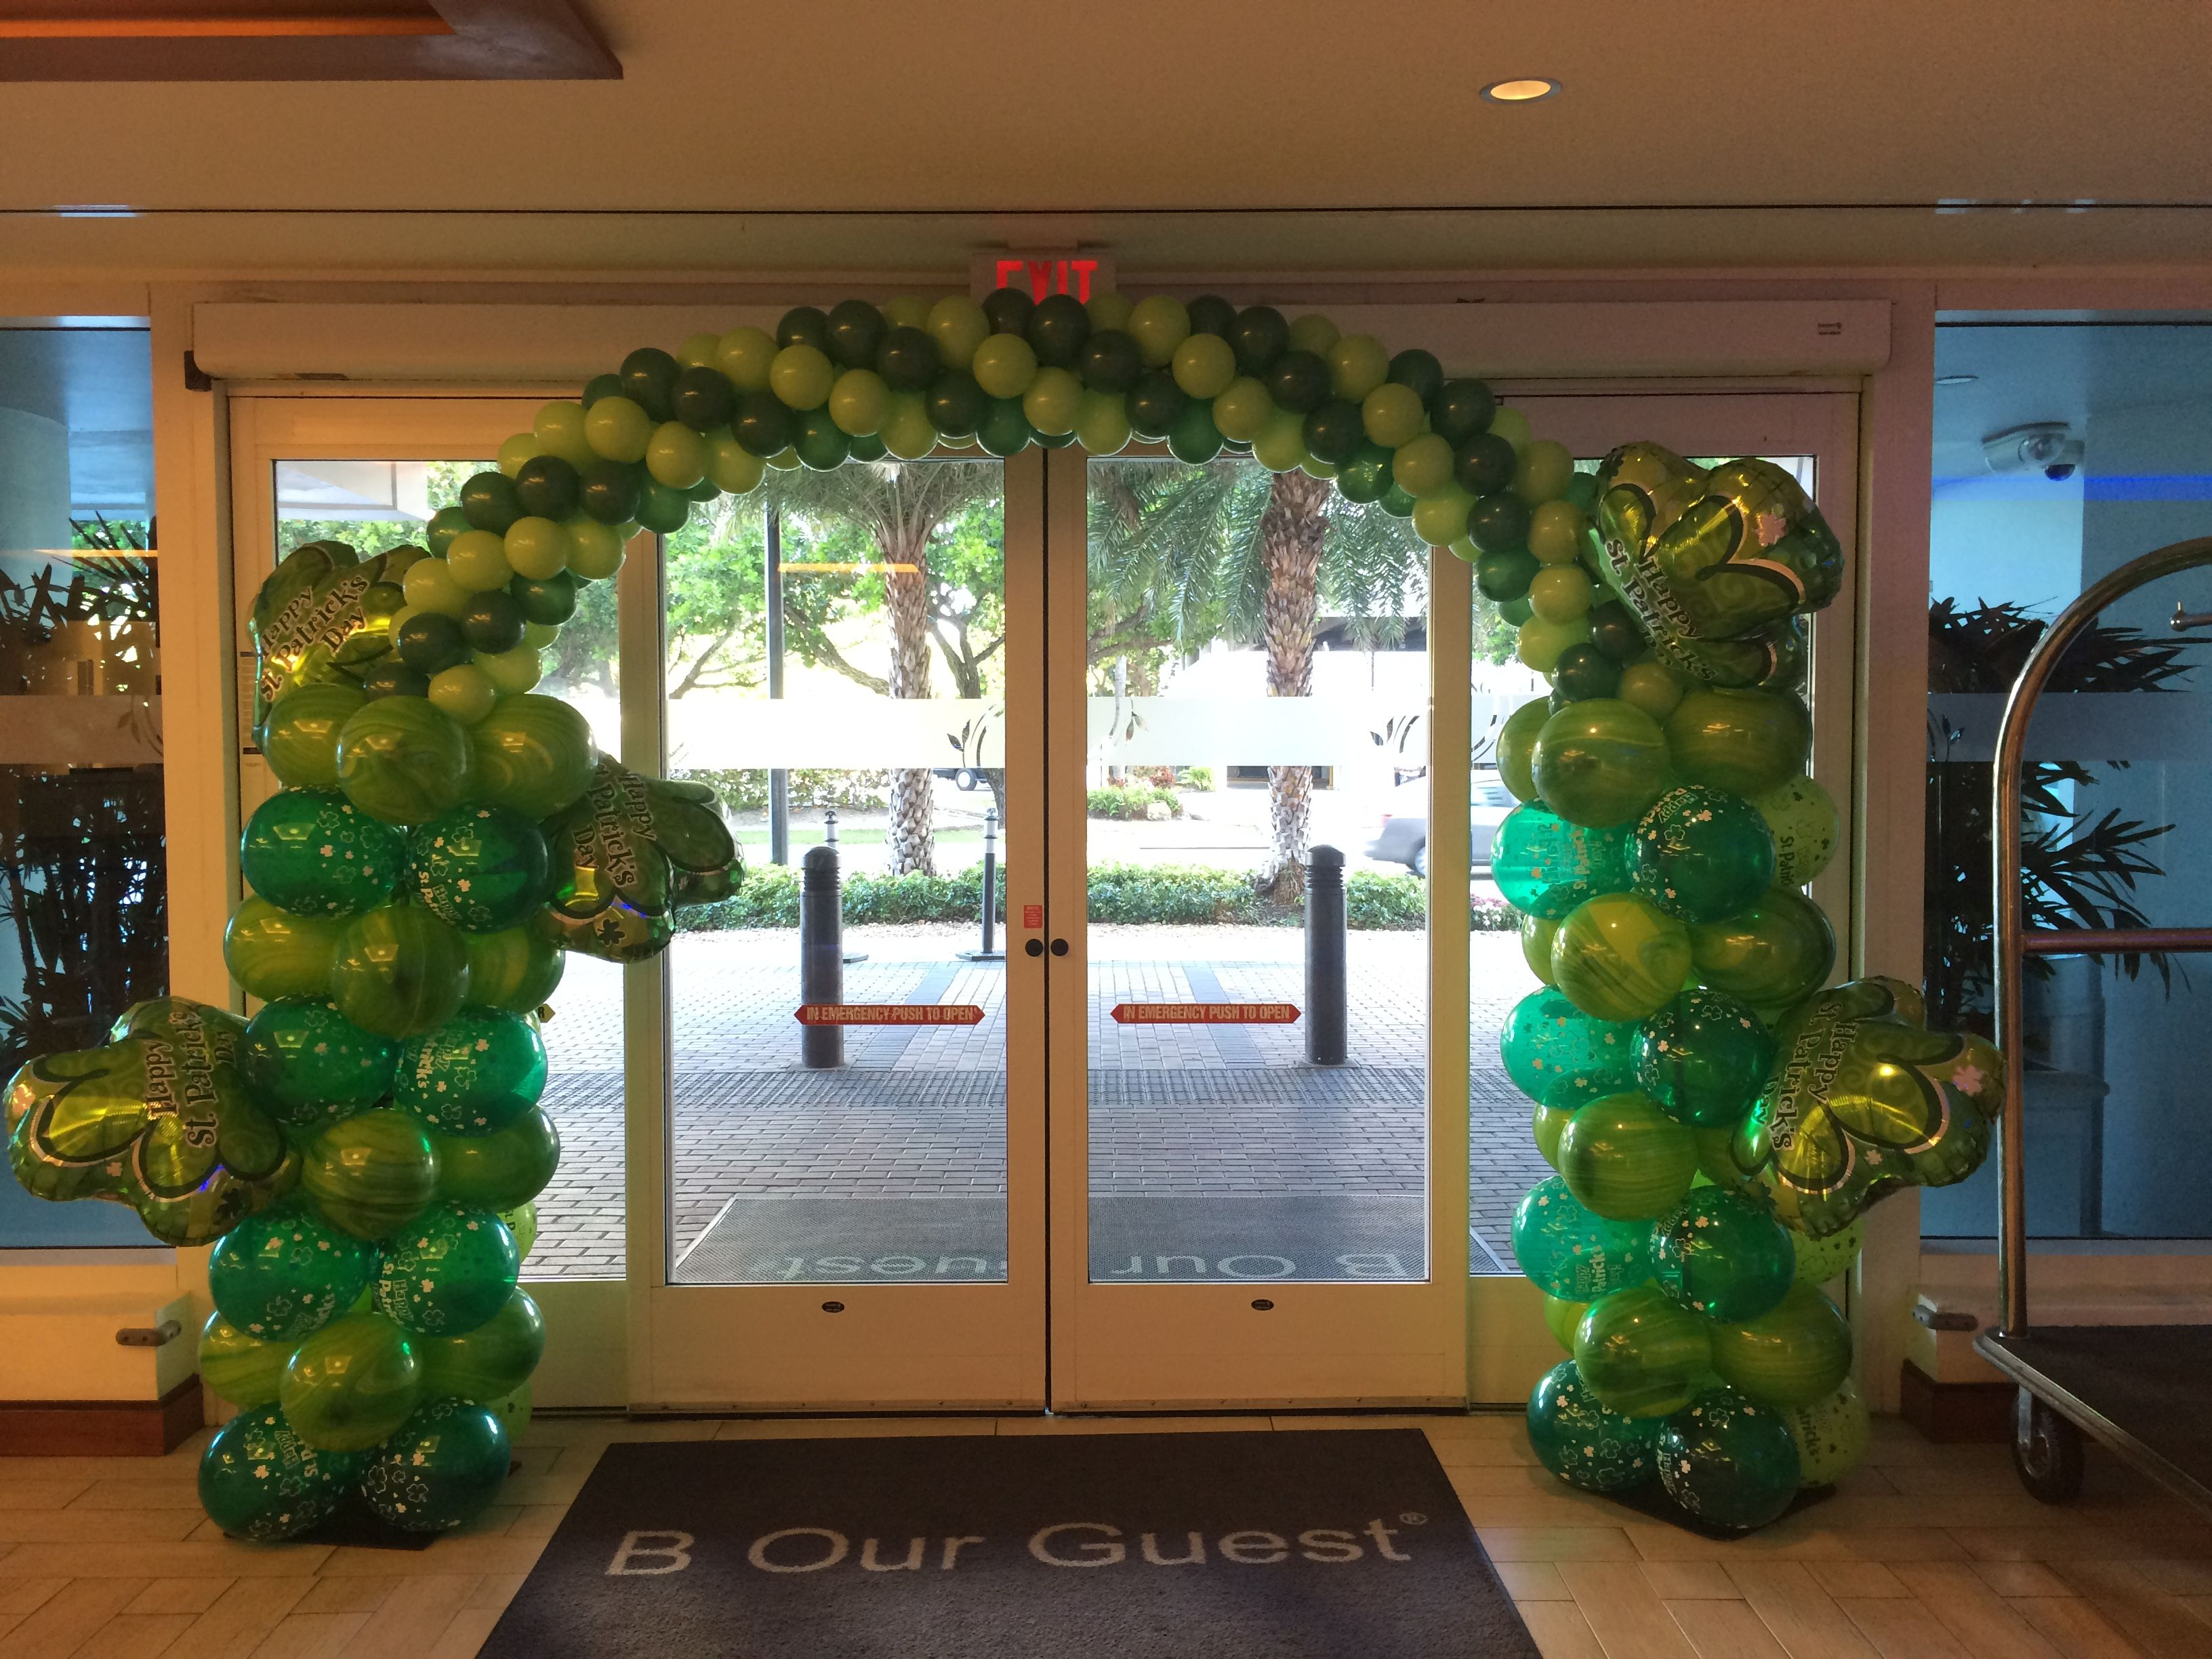 St.Patrick's Day balloon arch